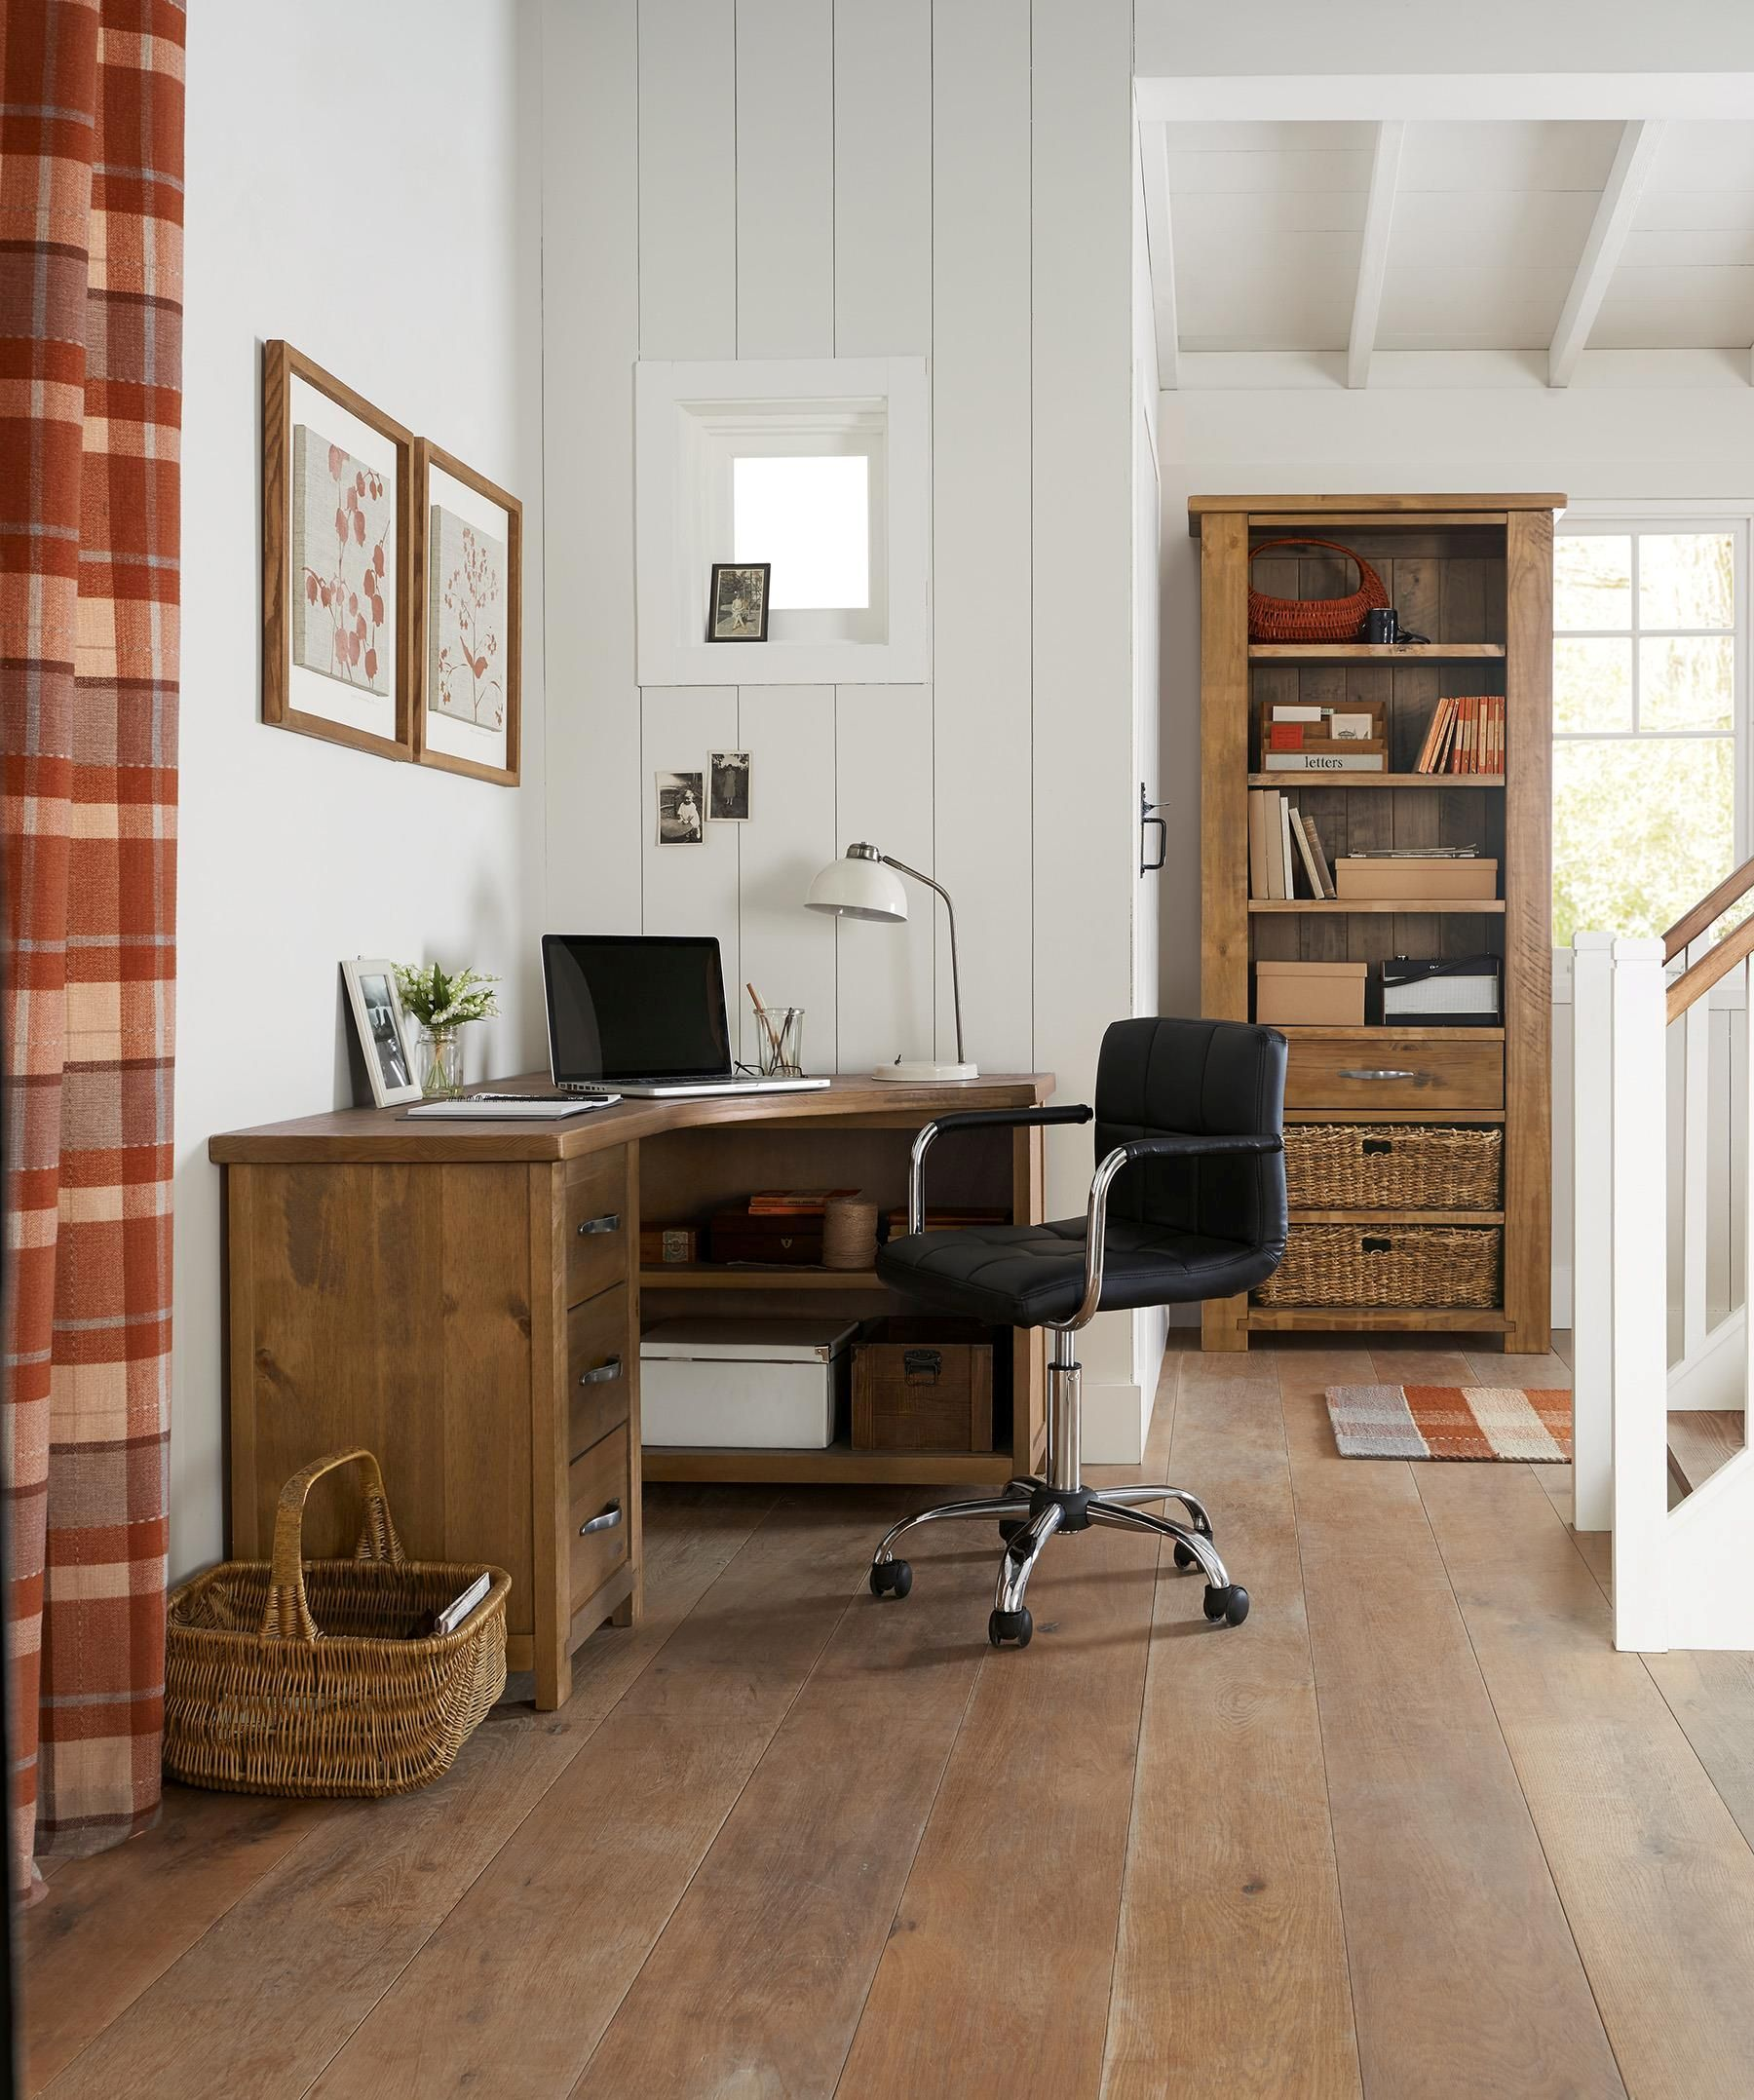 Buy hartford solid pine corner desk from the next uk online shop 350 home decor pinterest - Pine corner desks ...